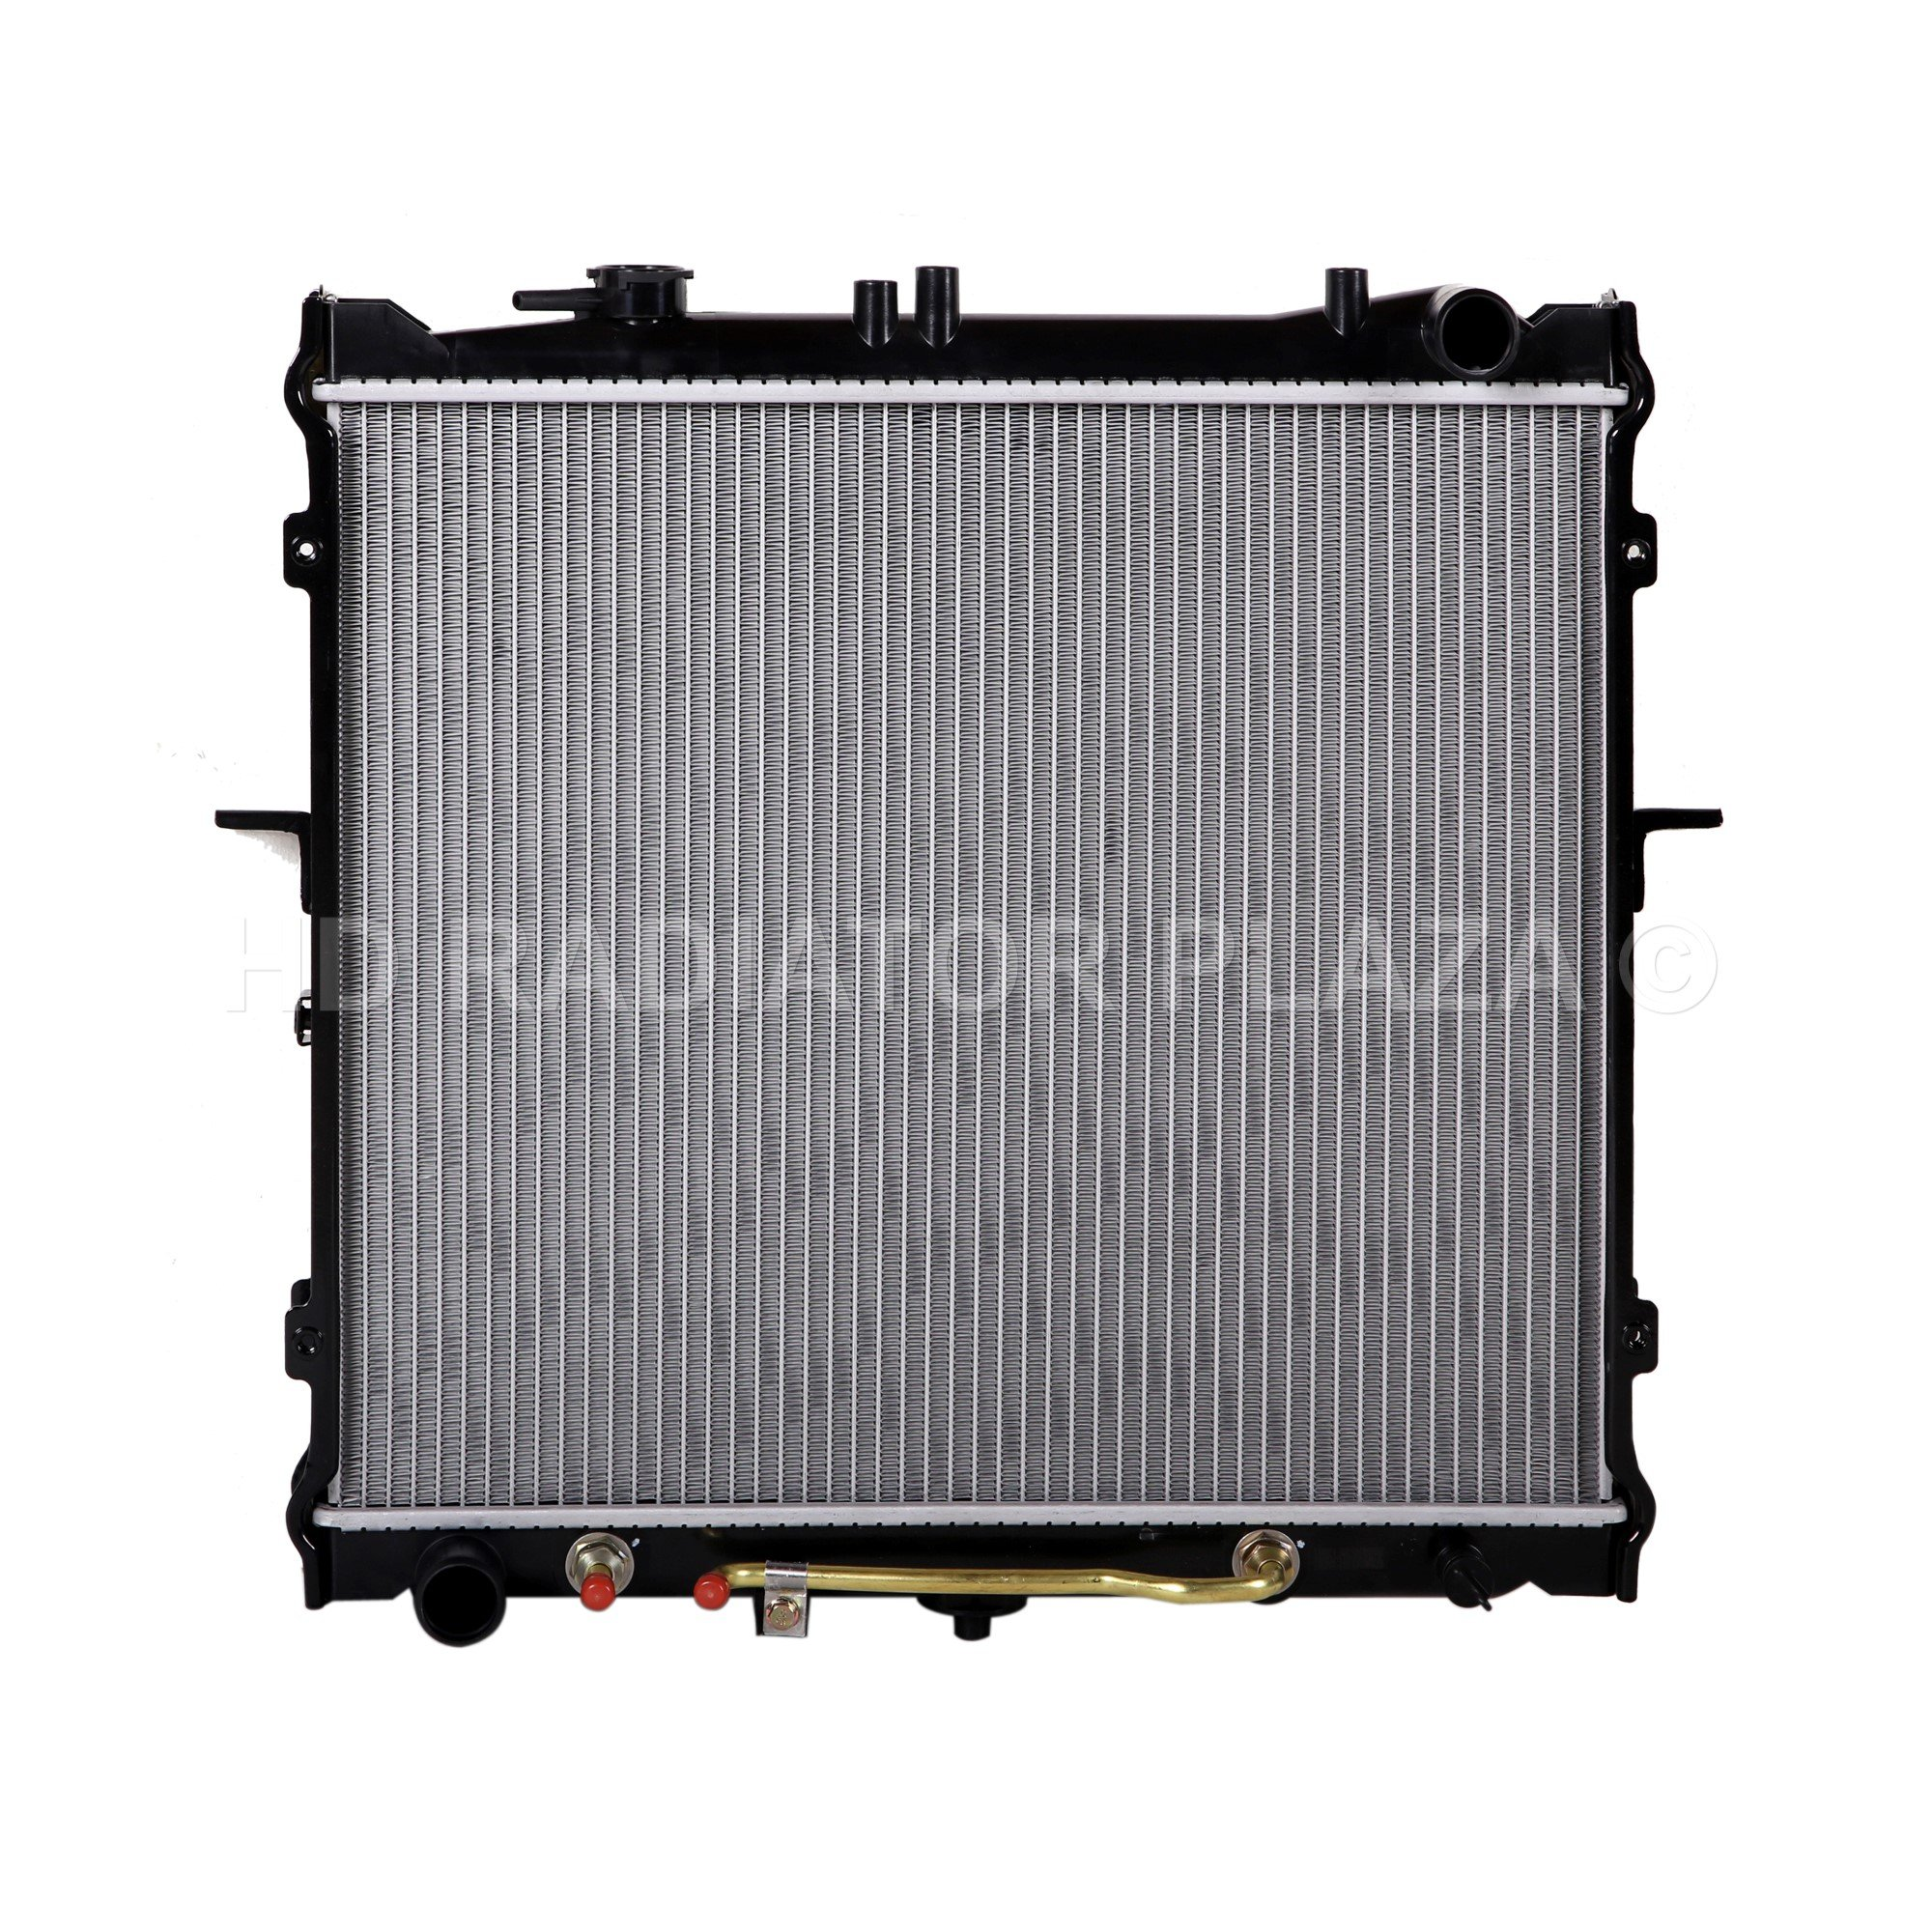 Radiator for 1995-2001 Kia Sportage, 2.0L I4